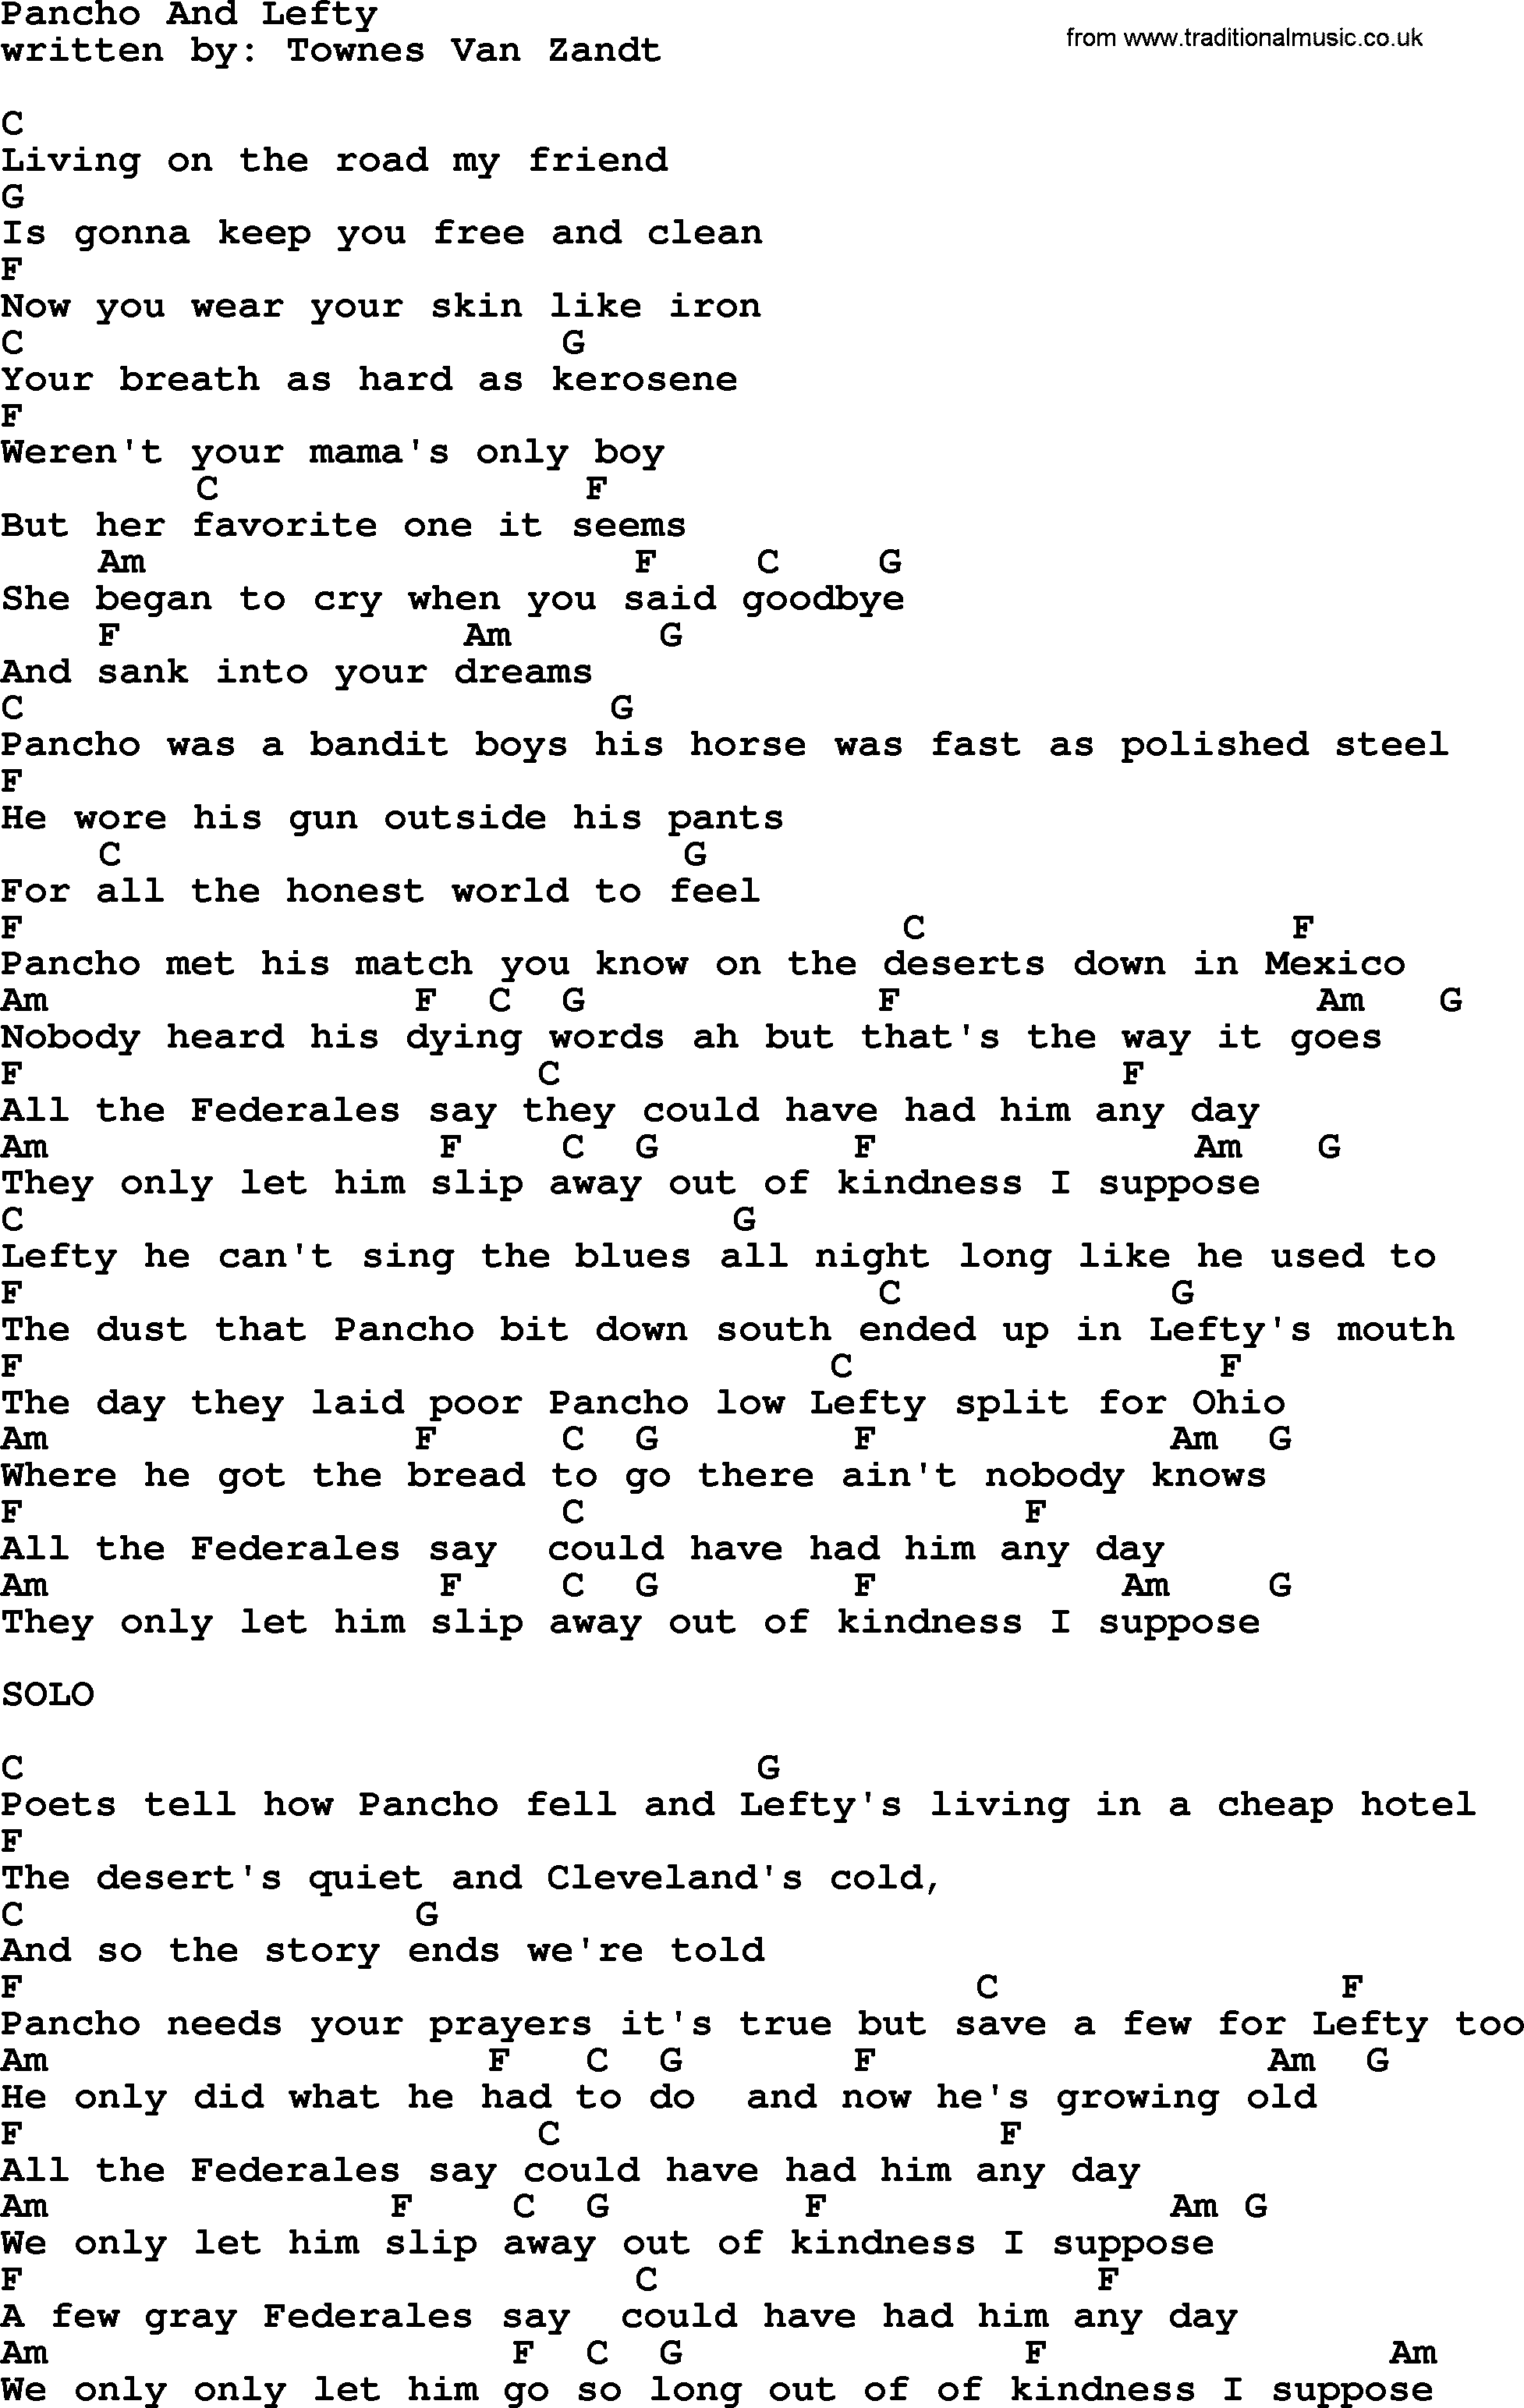 pancho and lefty lyrics